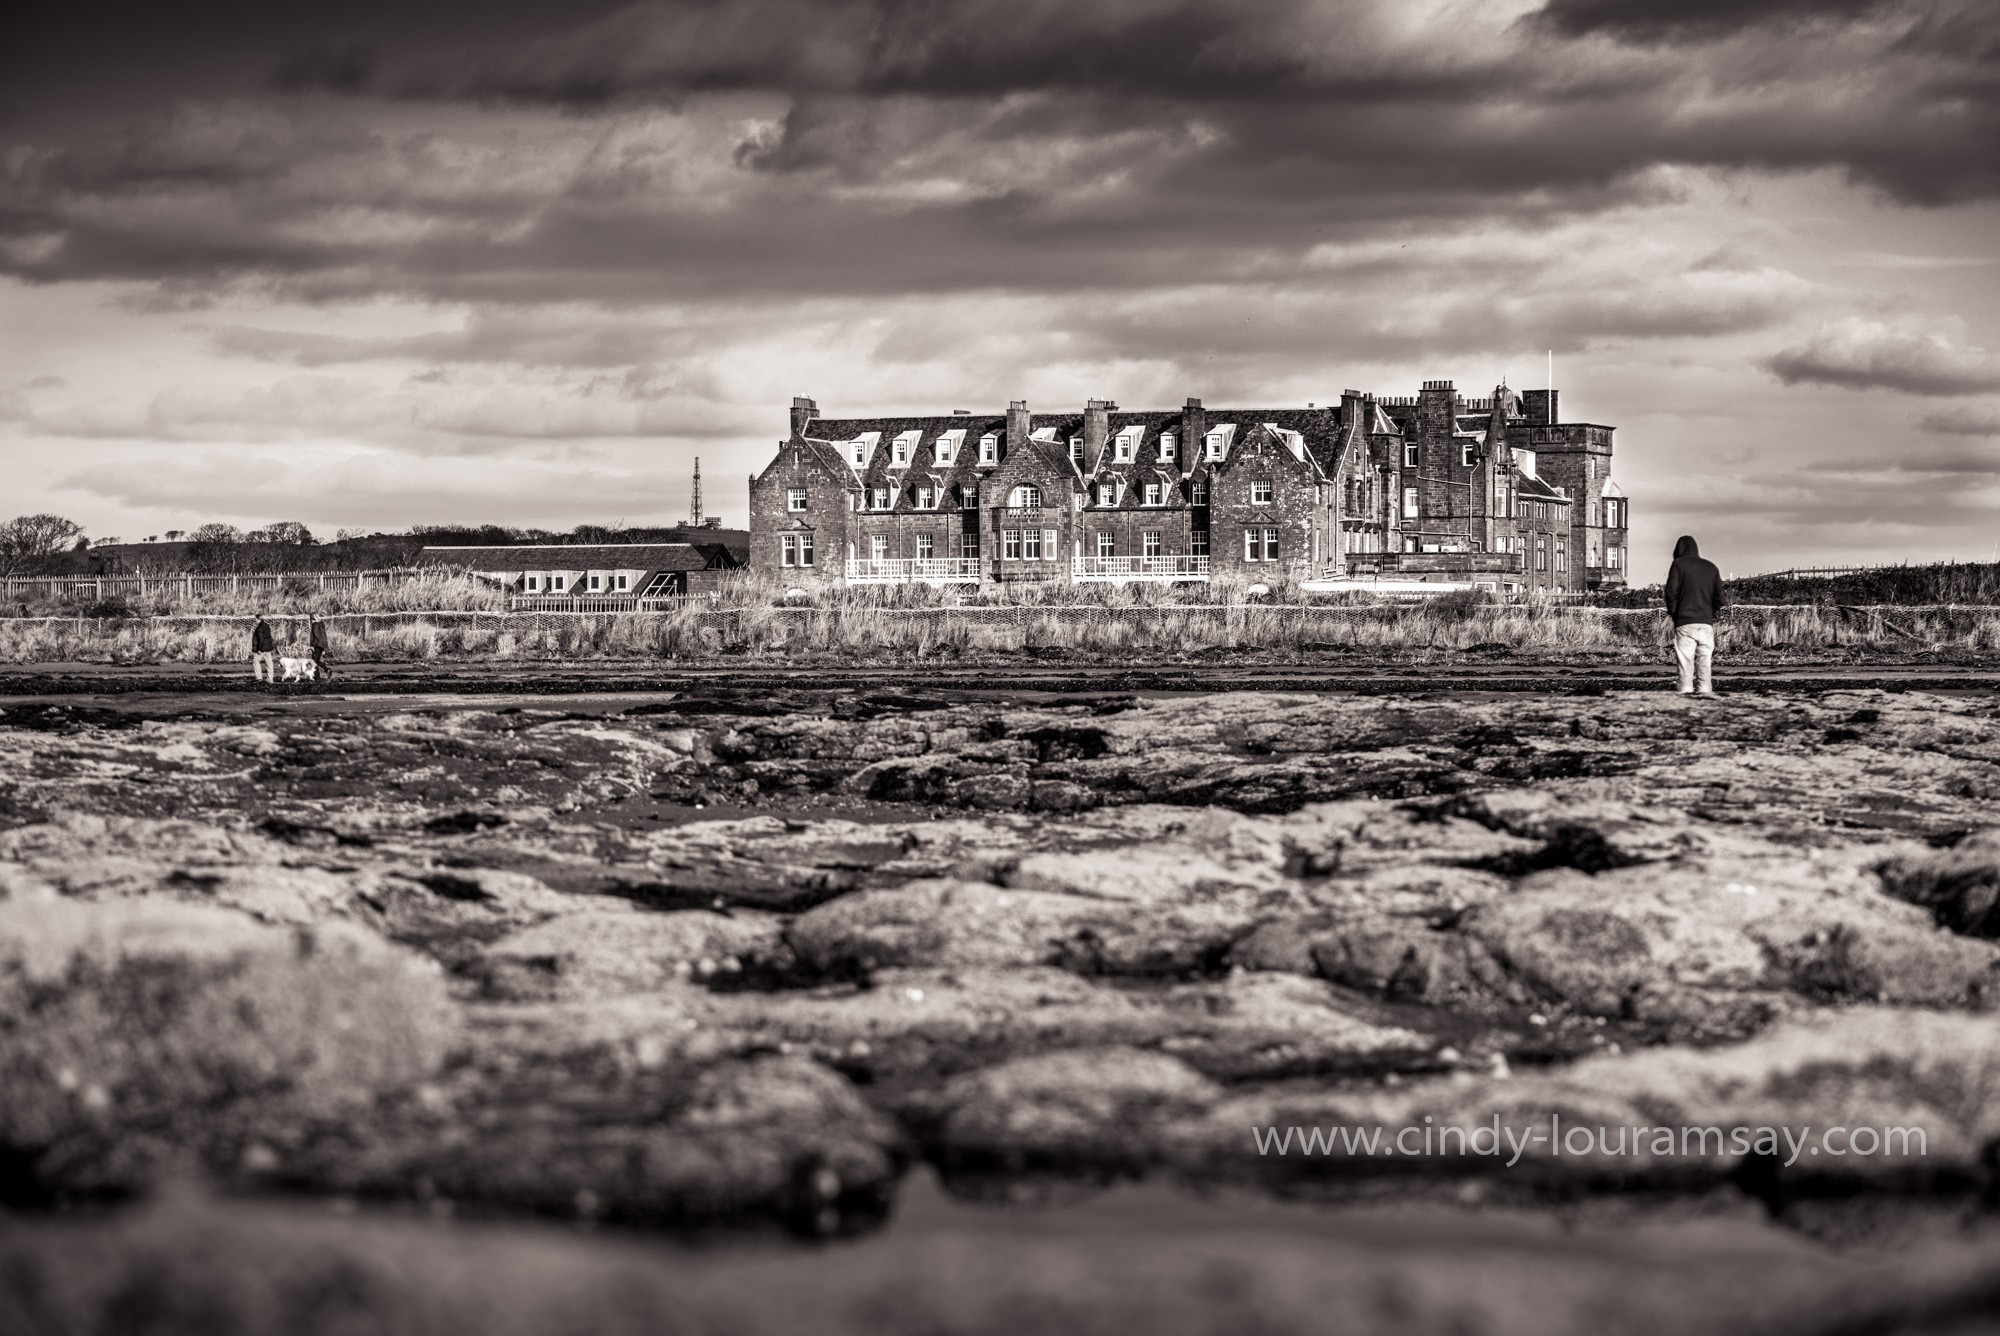 The Marine Hotel, Troon, Scotland